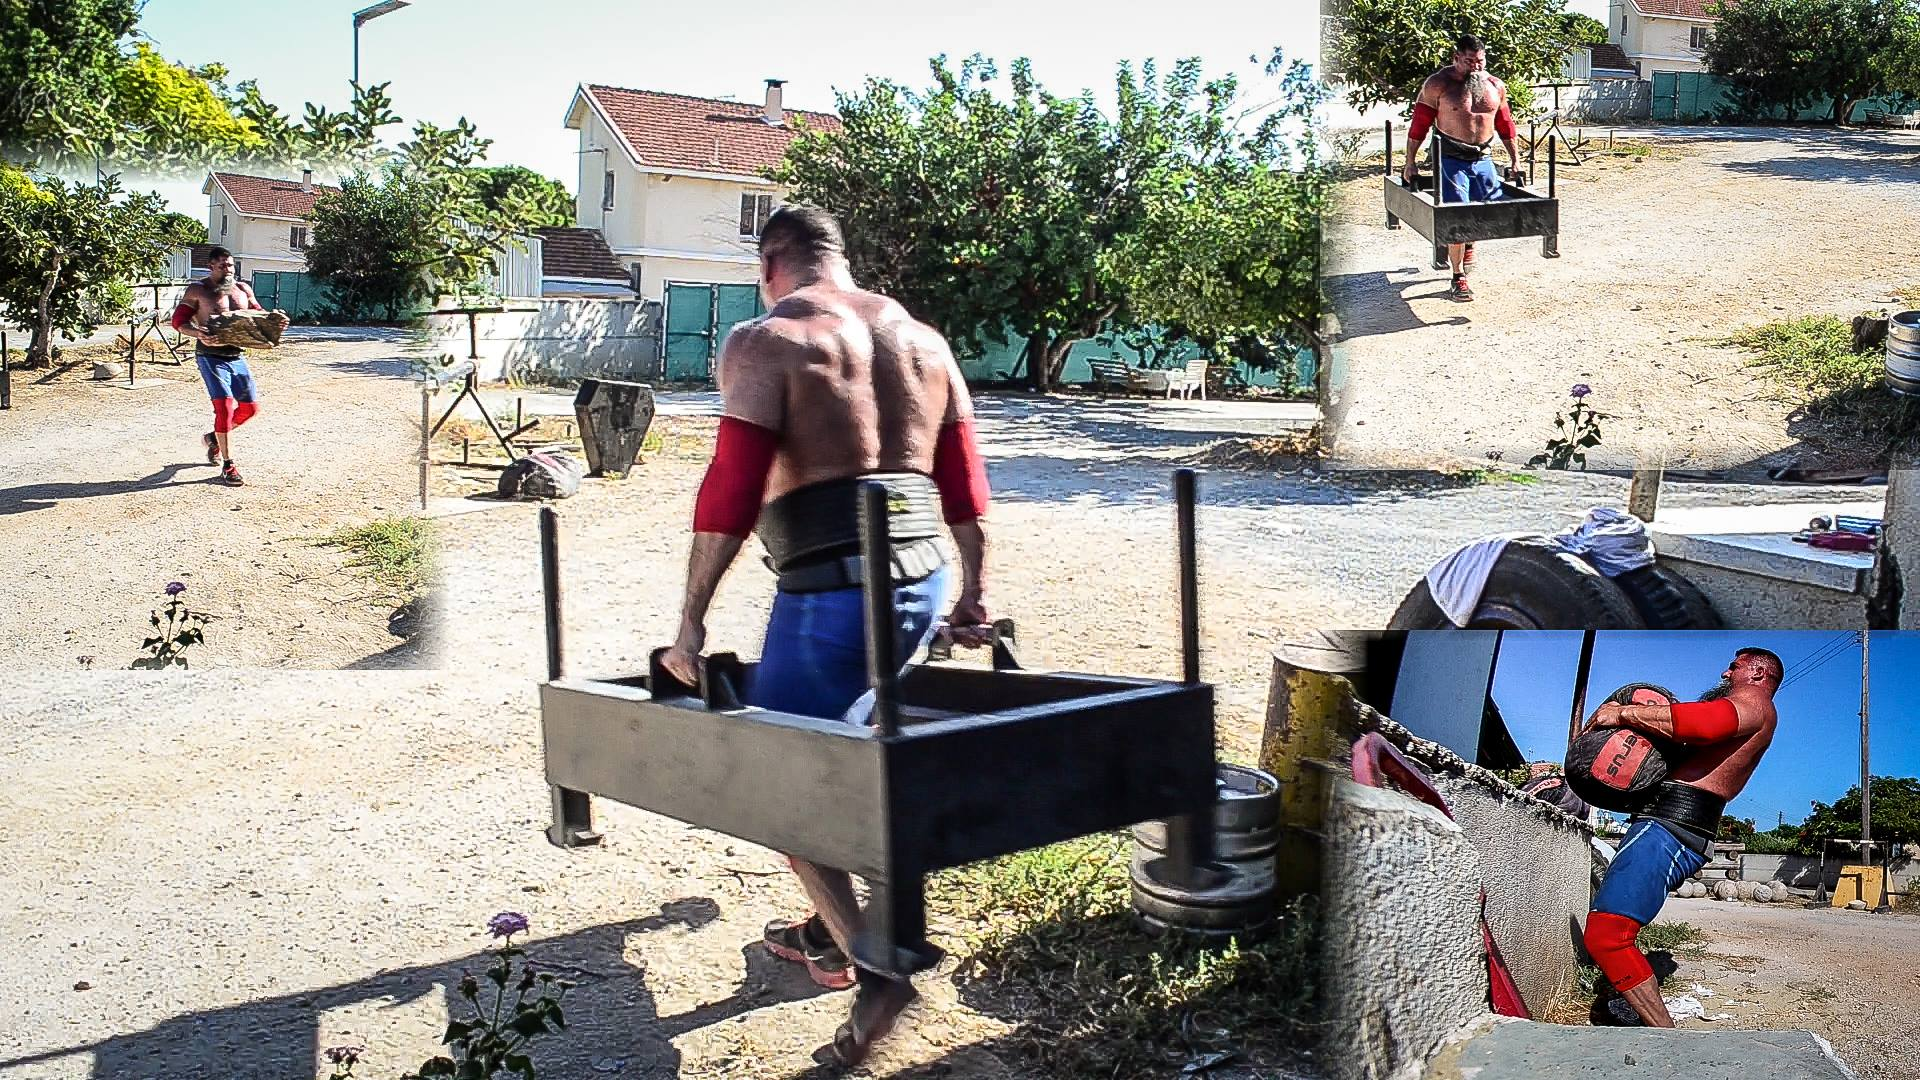 Deadlift Story: Not As Planned